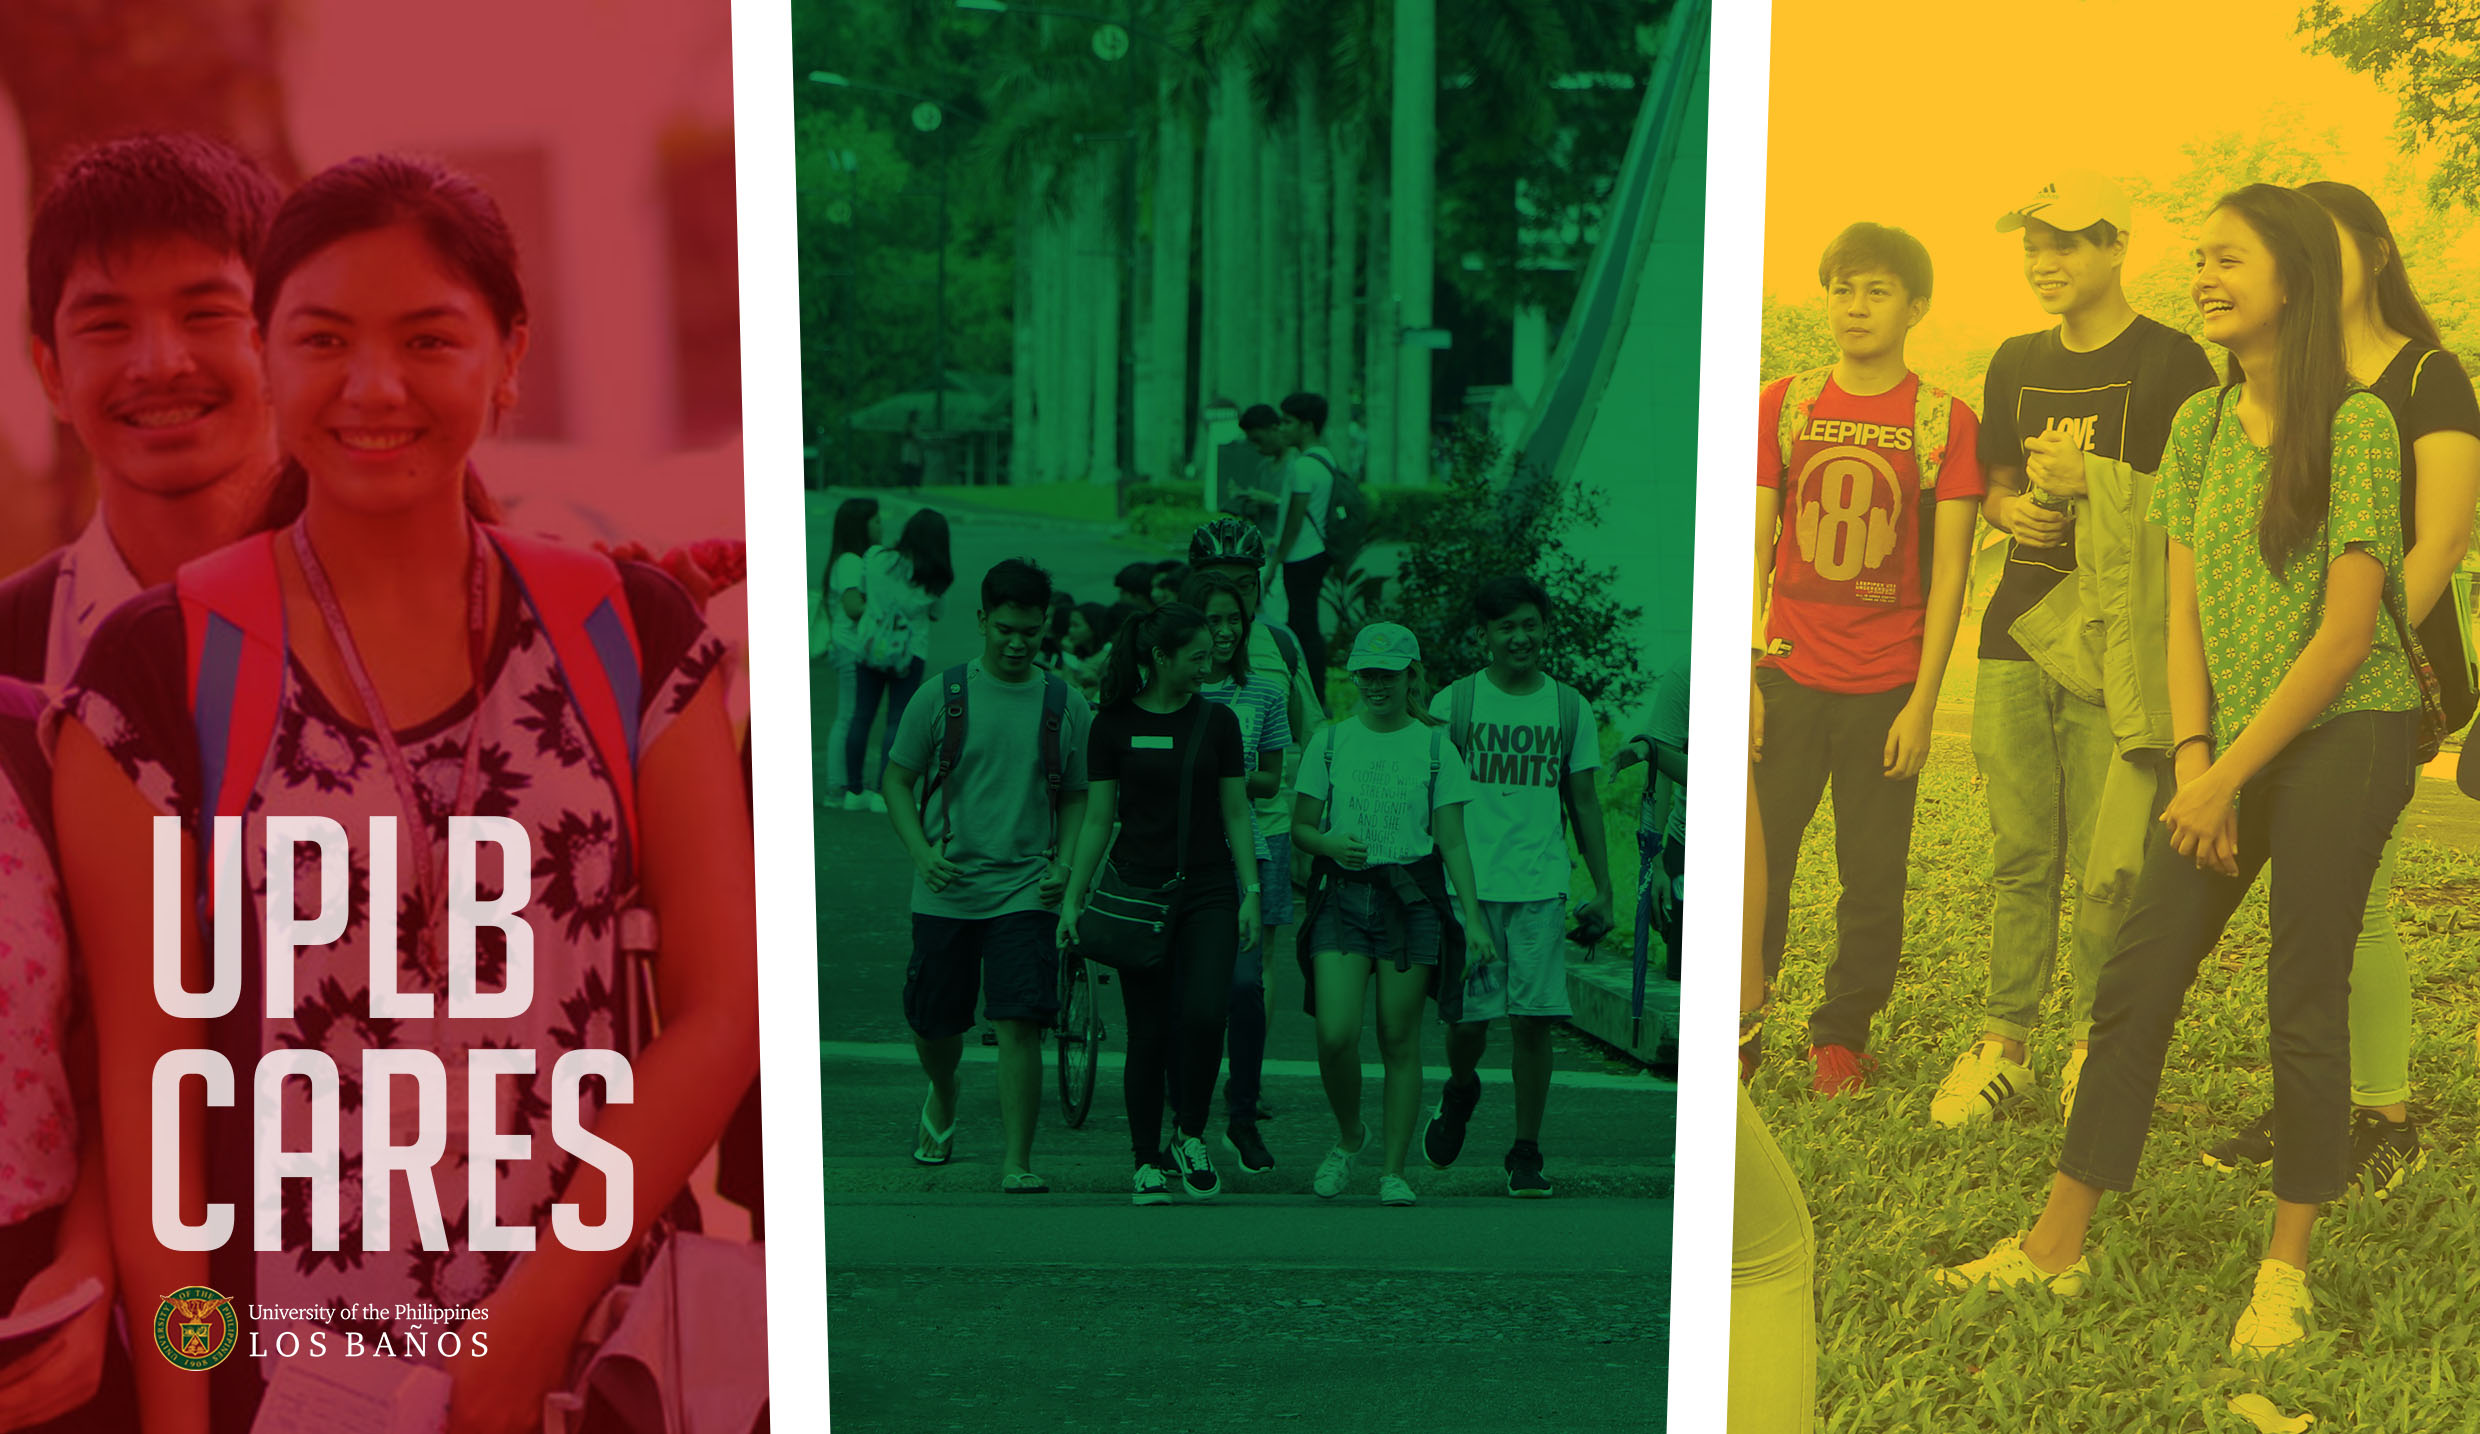 UPLB launches UPLB CARES to assist students in remote learning